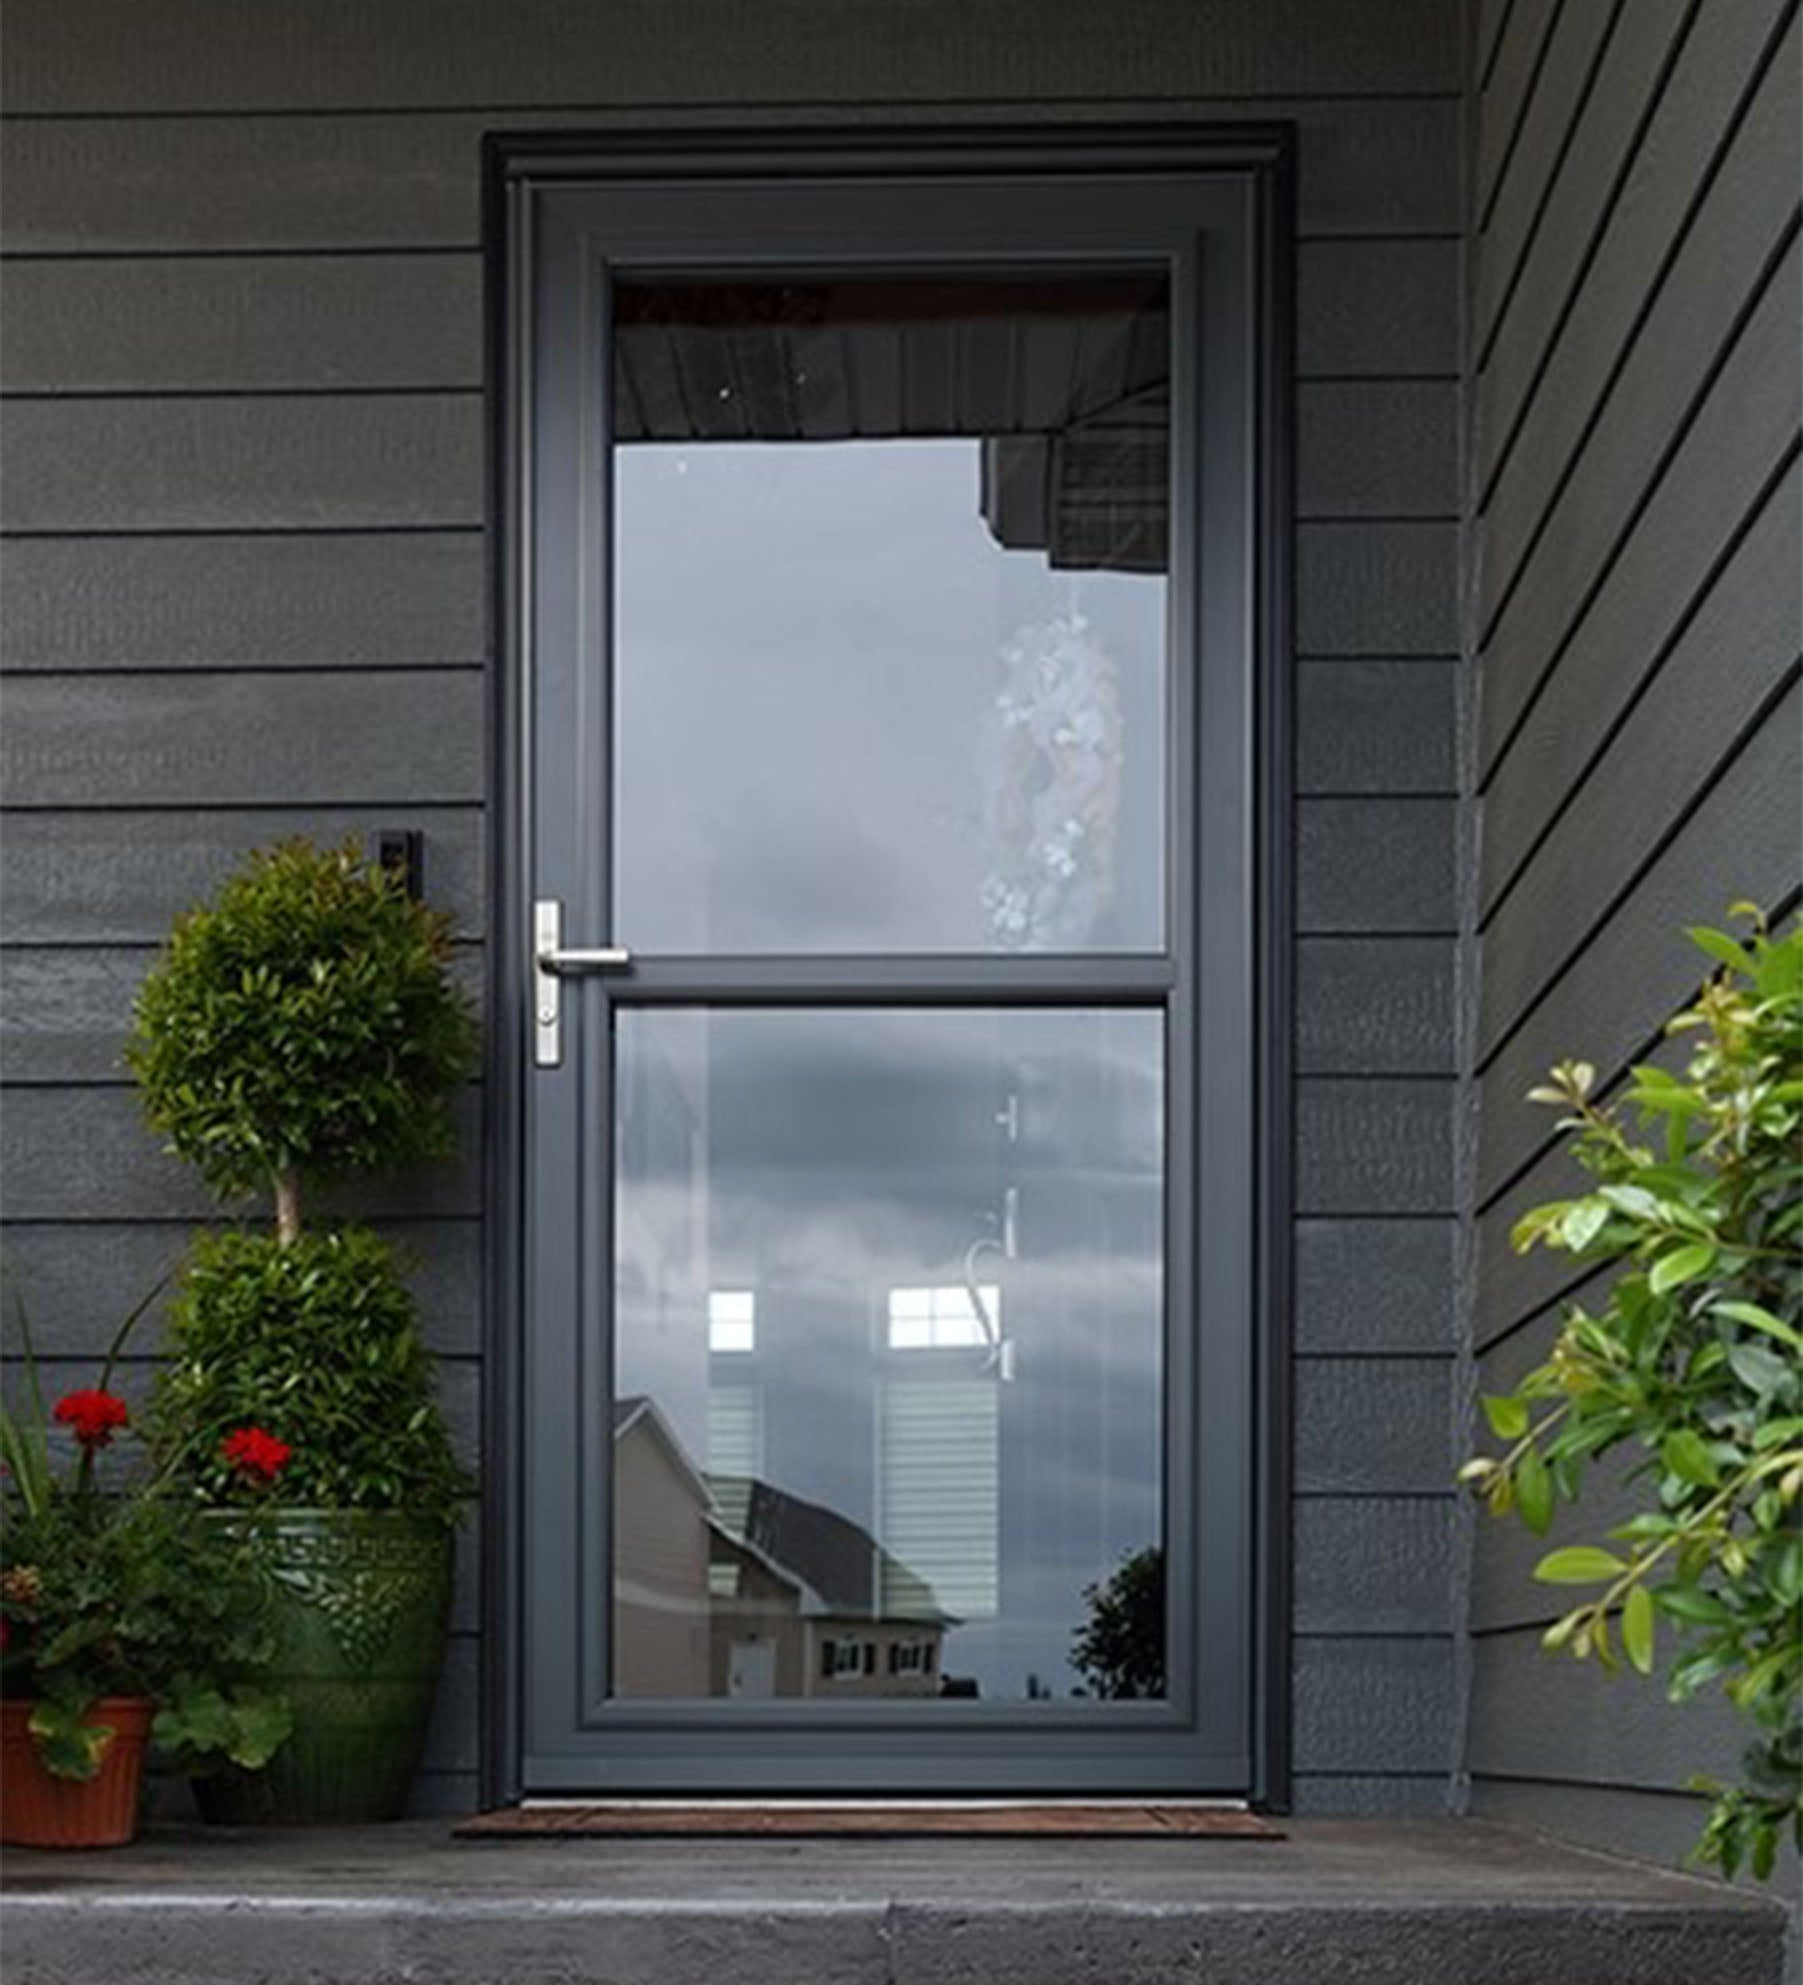 INSTALLED Larson Easy Vent Storm Door w/ Hardware        STARTING $652